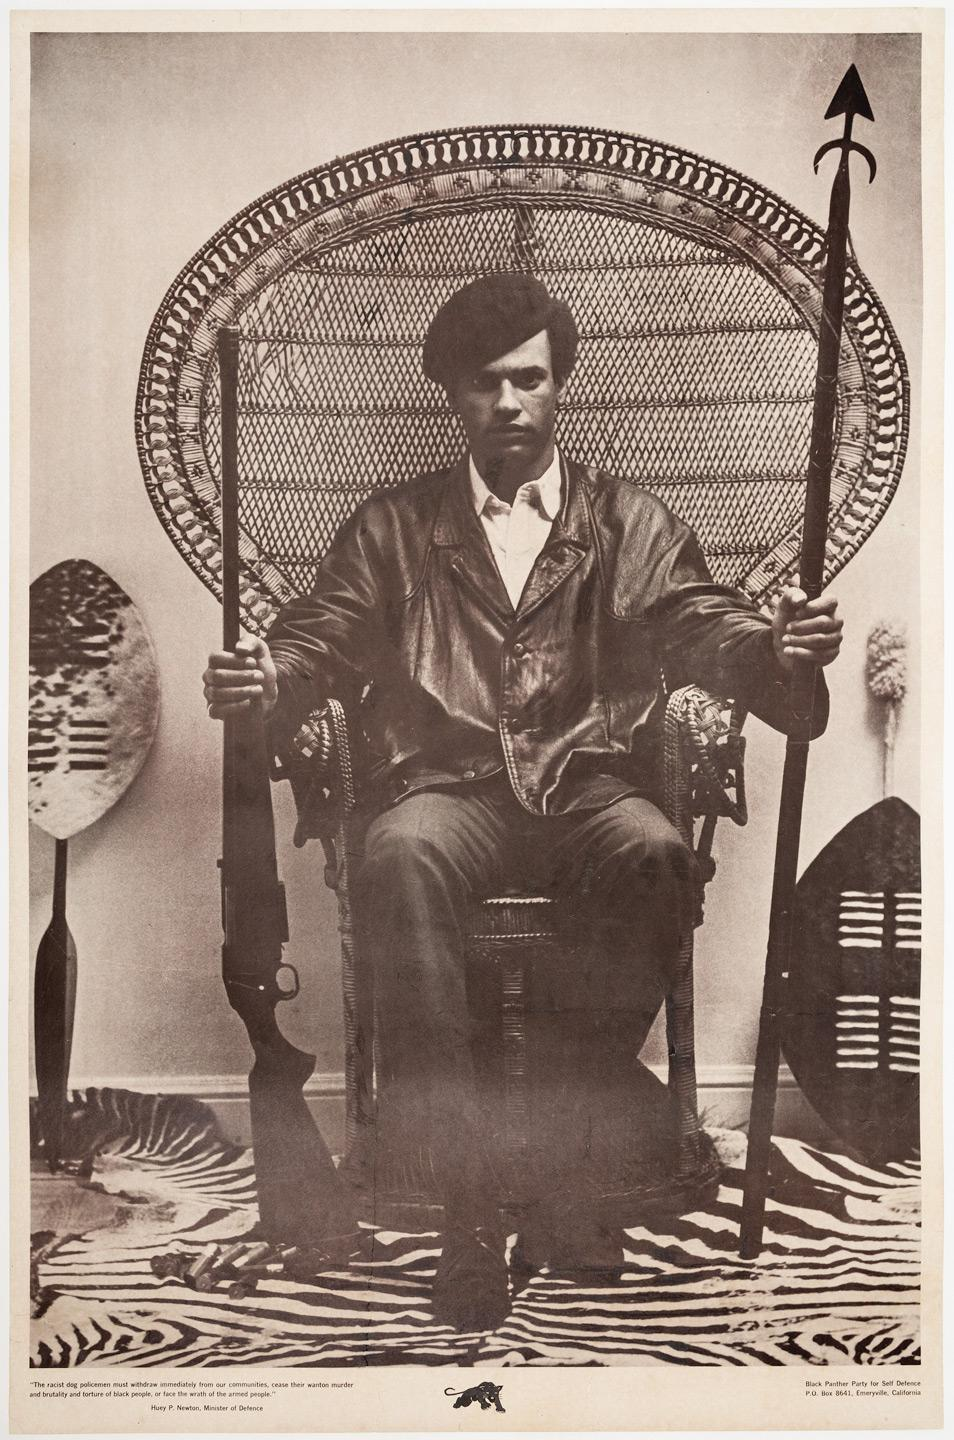 large wicker chair covers rental hamilton poster of huey p. newton for the black panthers - famous photograph him seated in a ...